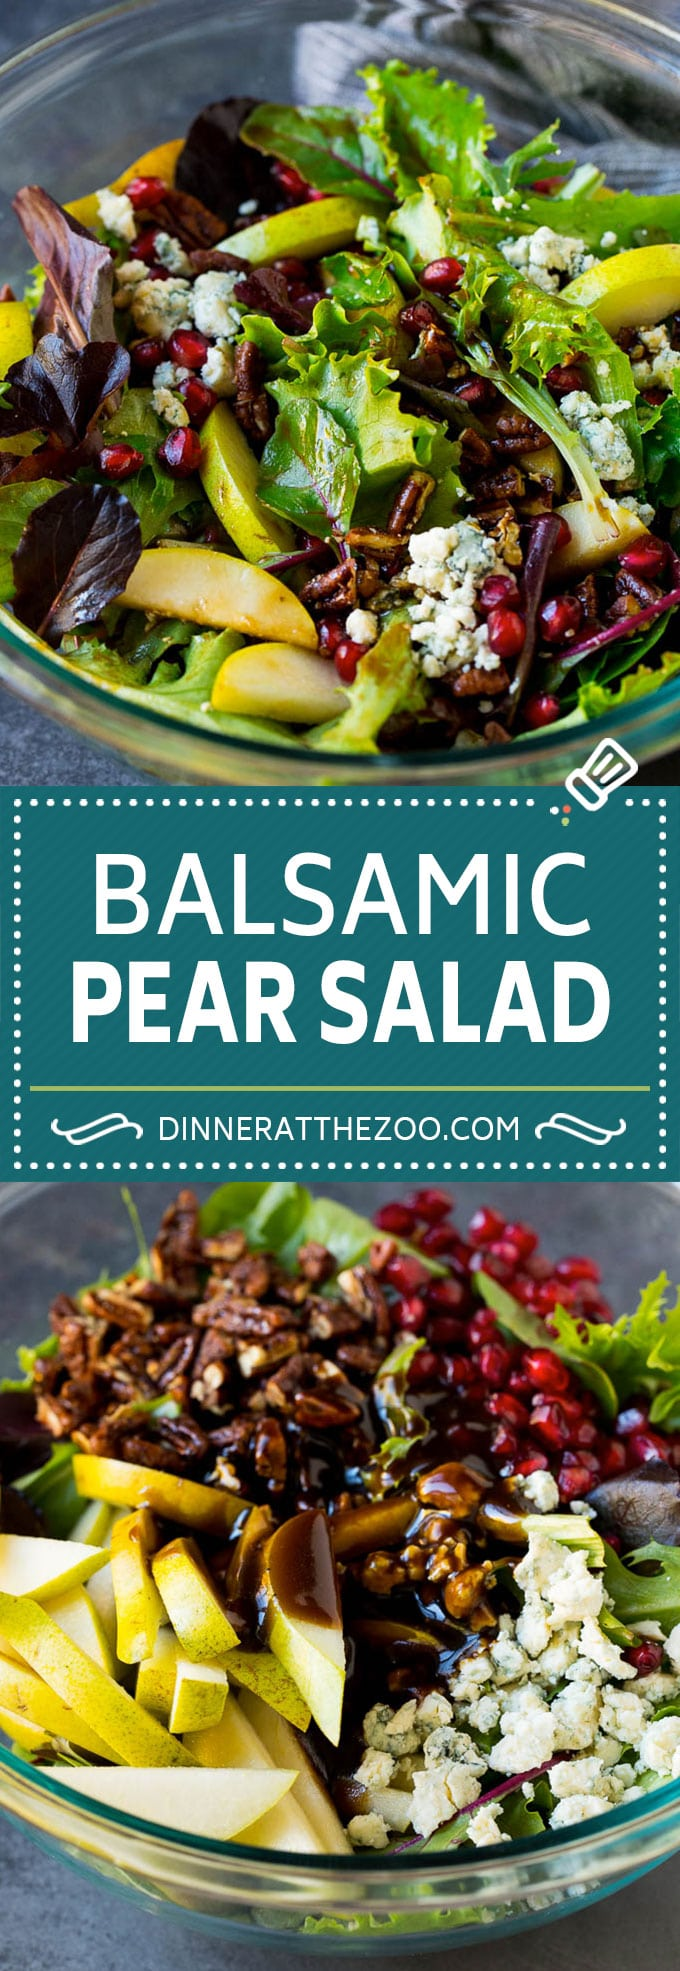 Pear Salad Recipe #salad #pears #fall #winter #dinner #dinneratthezoo